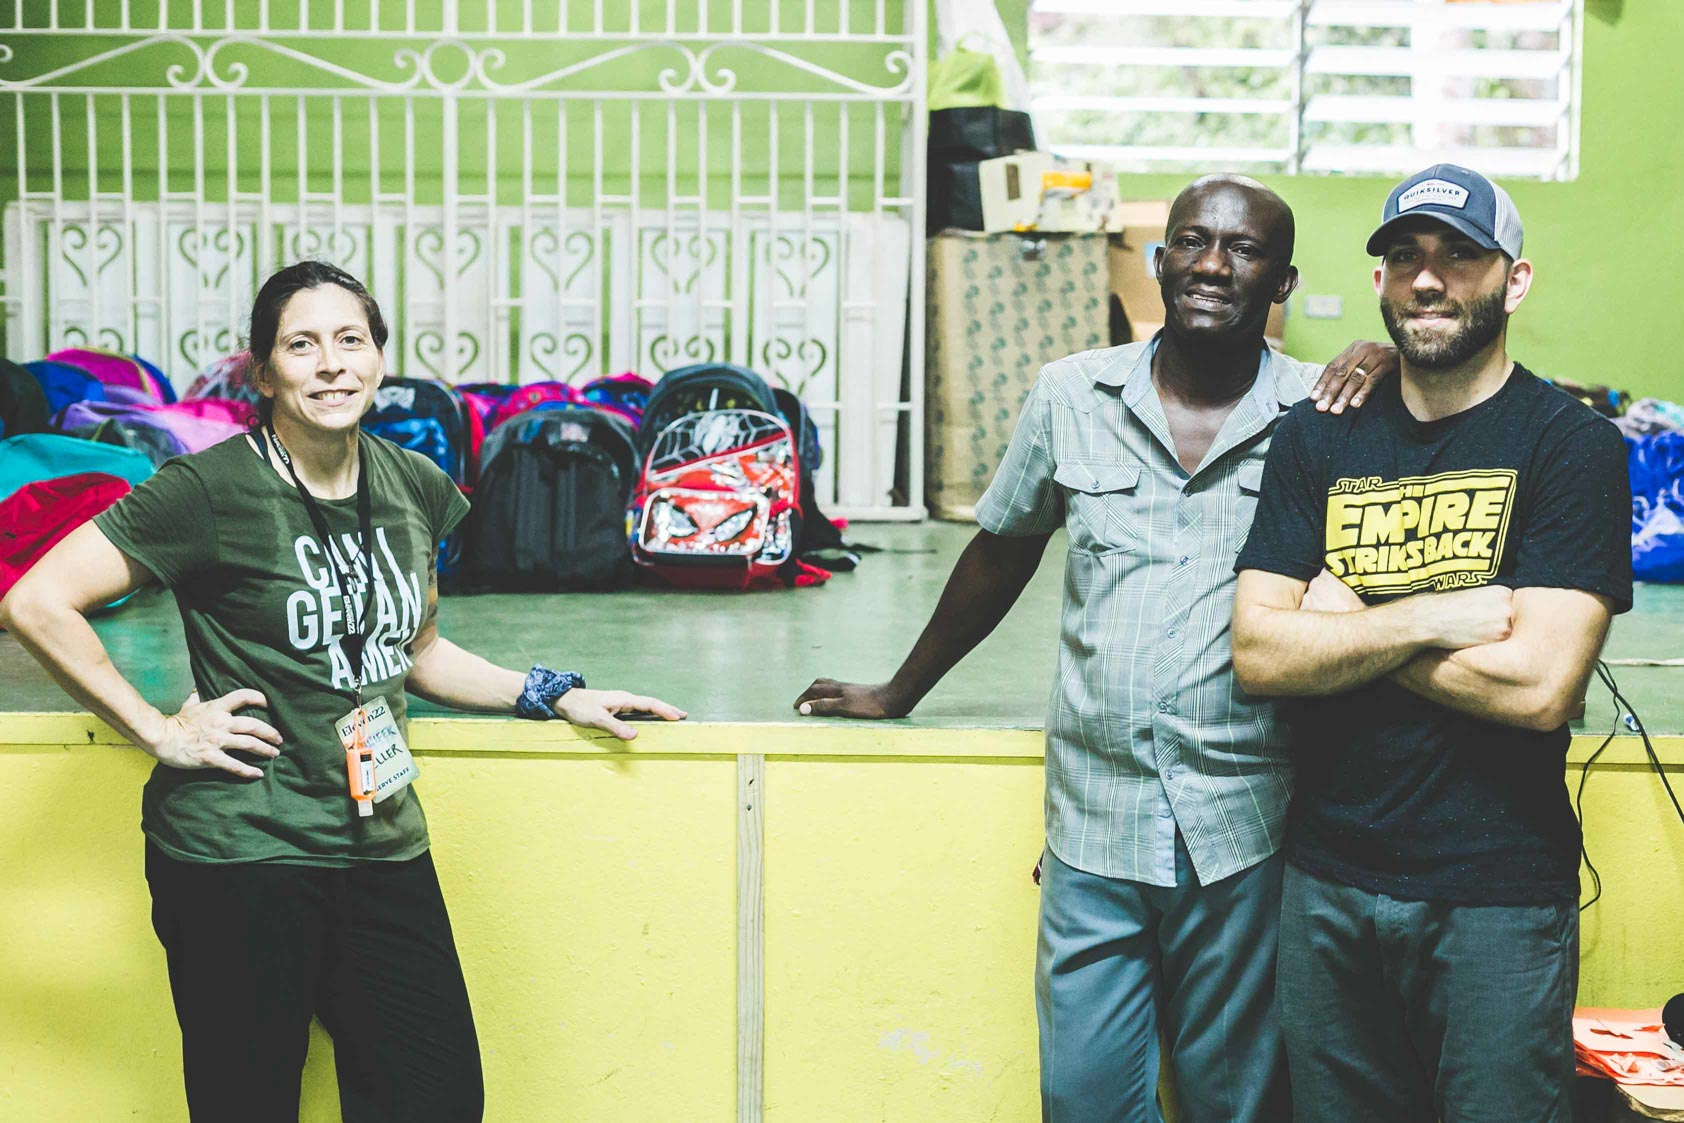 eleven22-missions-jamaica-infirmary-poverty-adam-szarmack-214.jpg